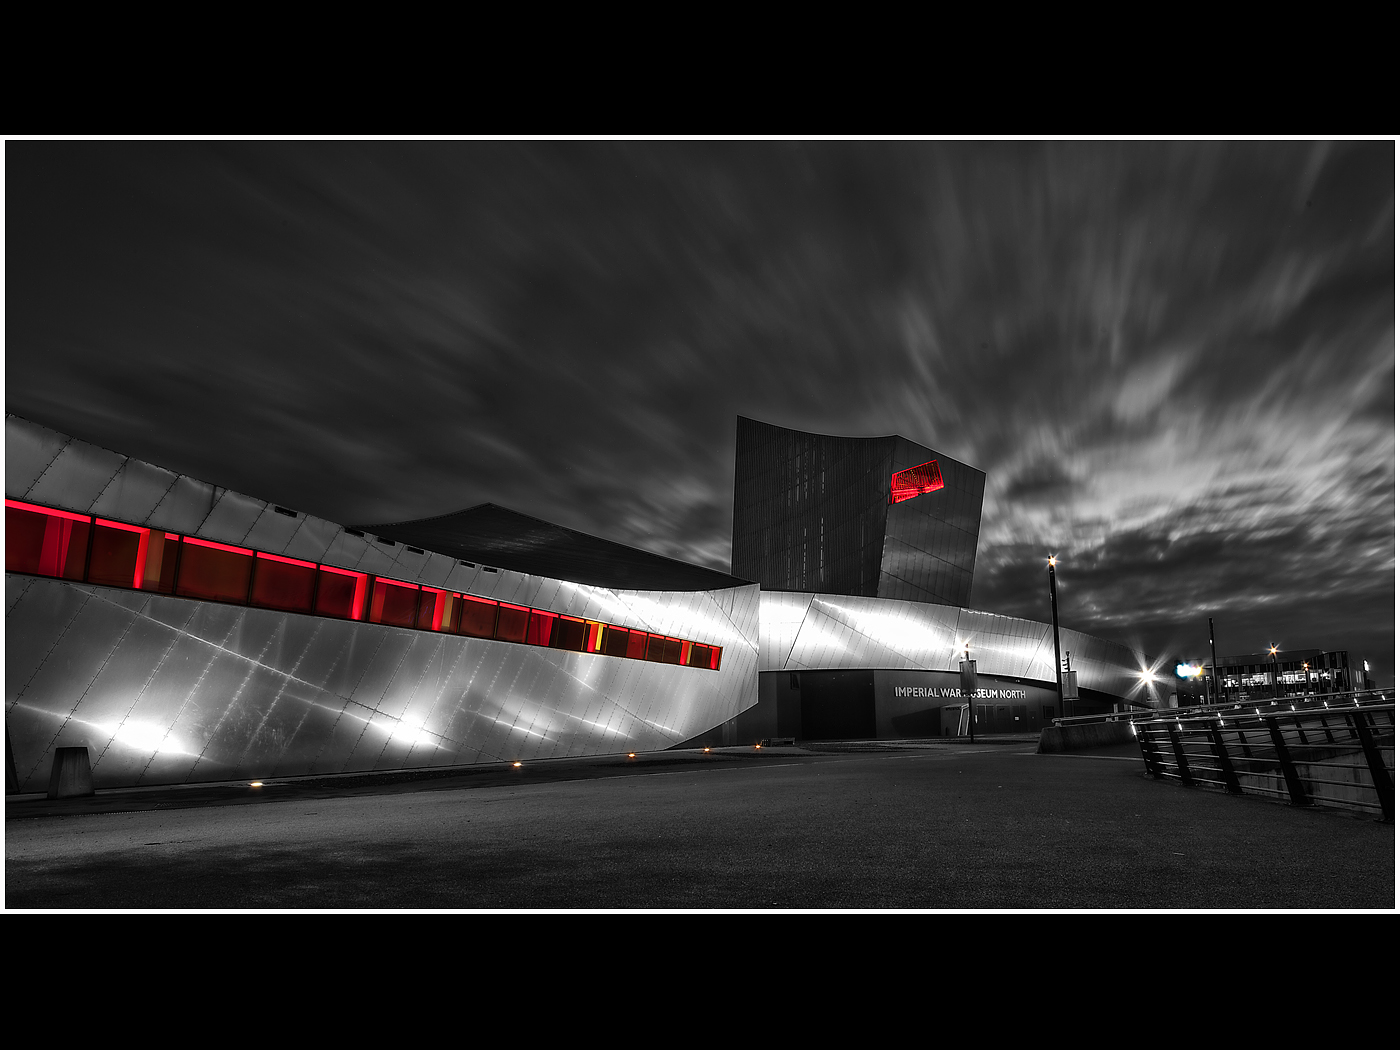 Imperial War Museum at Night